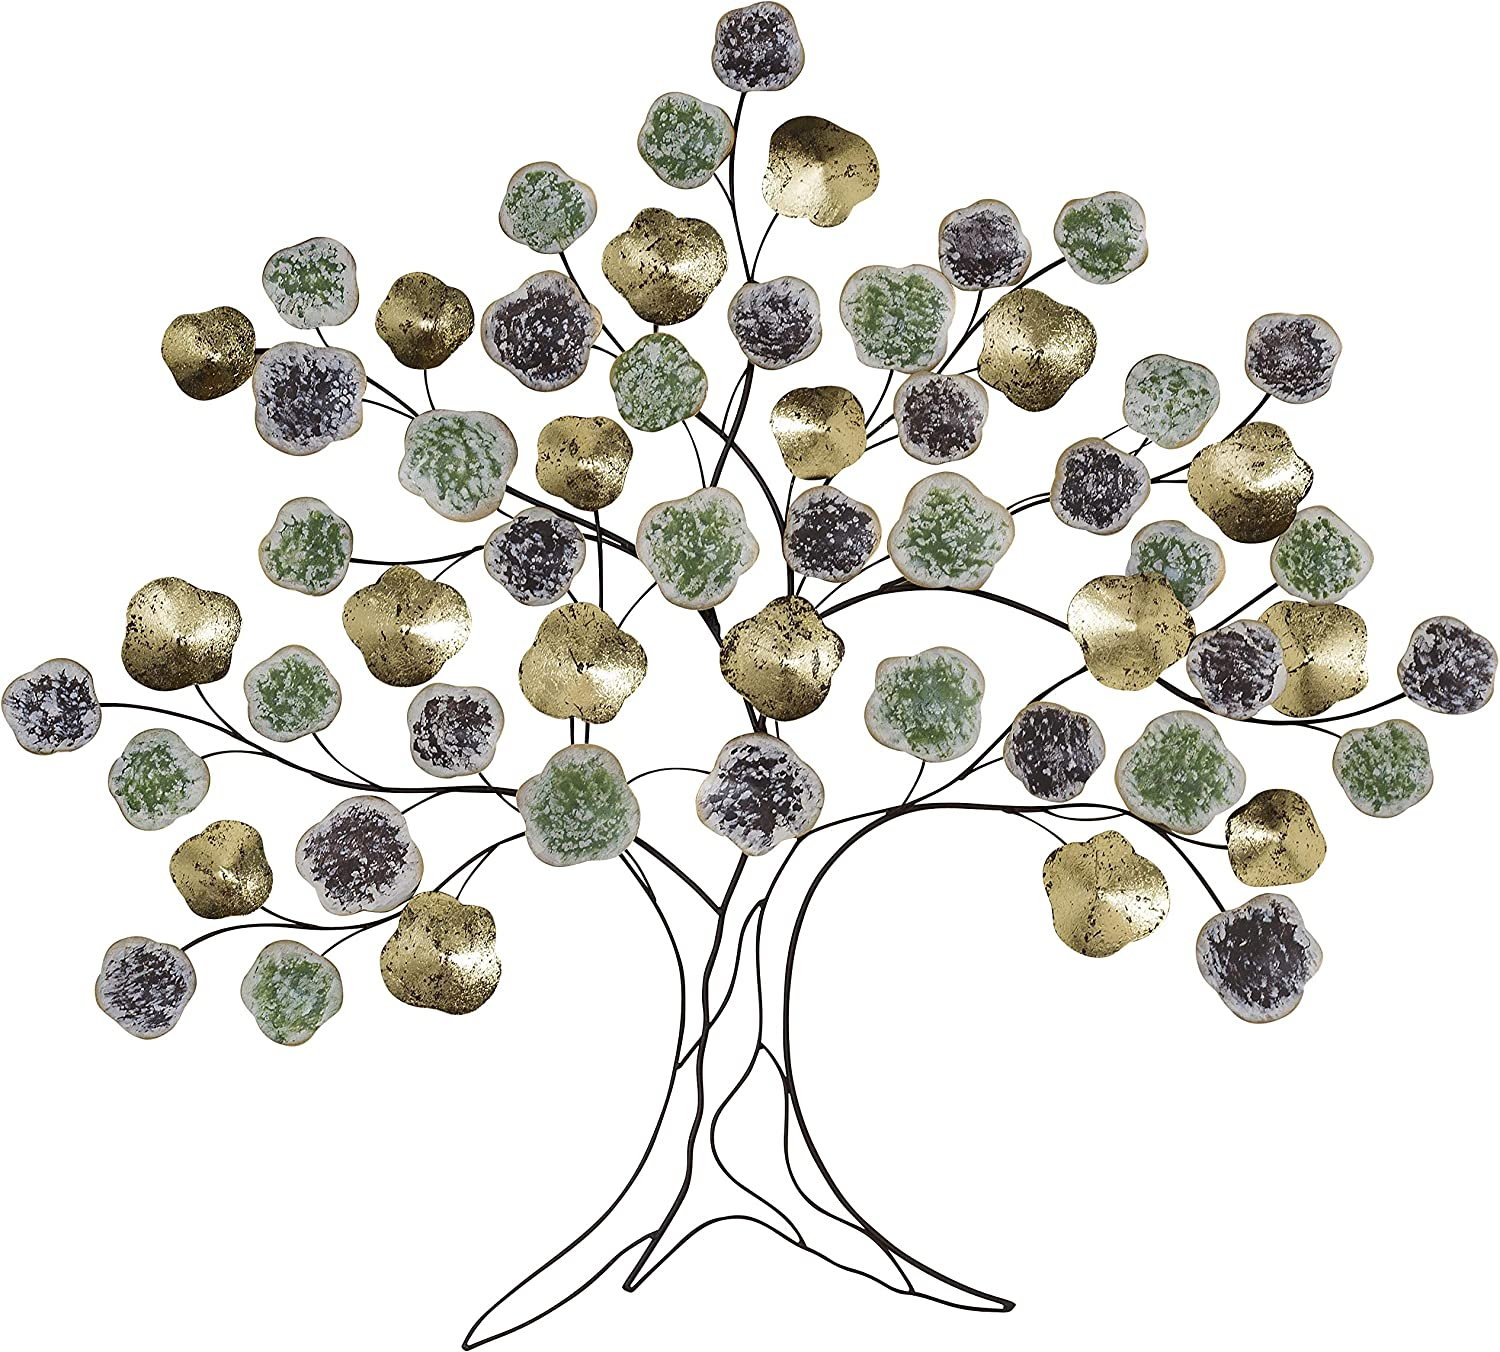 Tree of Life, Metal Wall Decor Art, Gold, Silver, Gray, Blue Leaves with Black Branches, Artisan Crafted Metal, Distressed Rubbed Rustic Finish, Lacquered Iron, 40 Wide x 35 Inches Tall